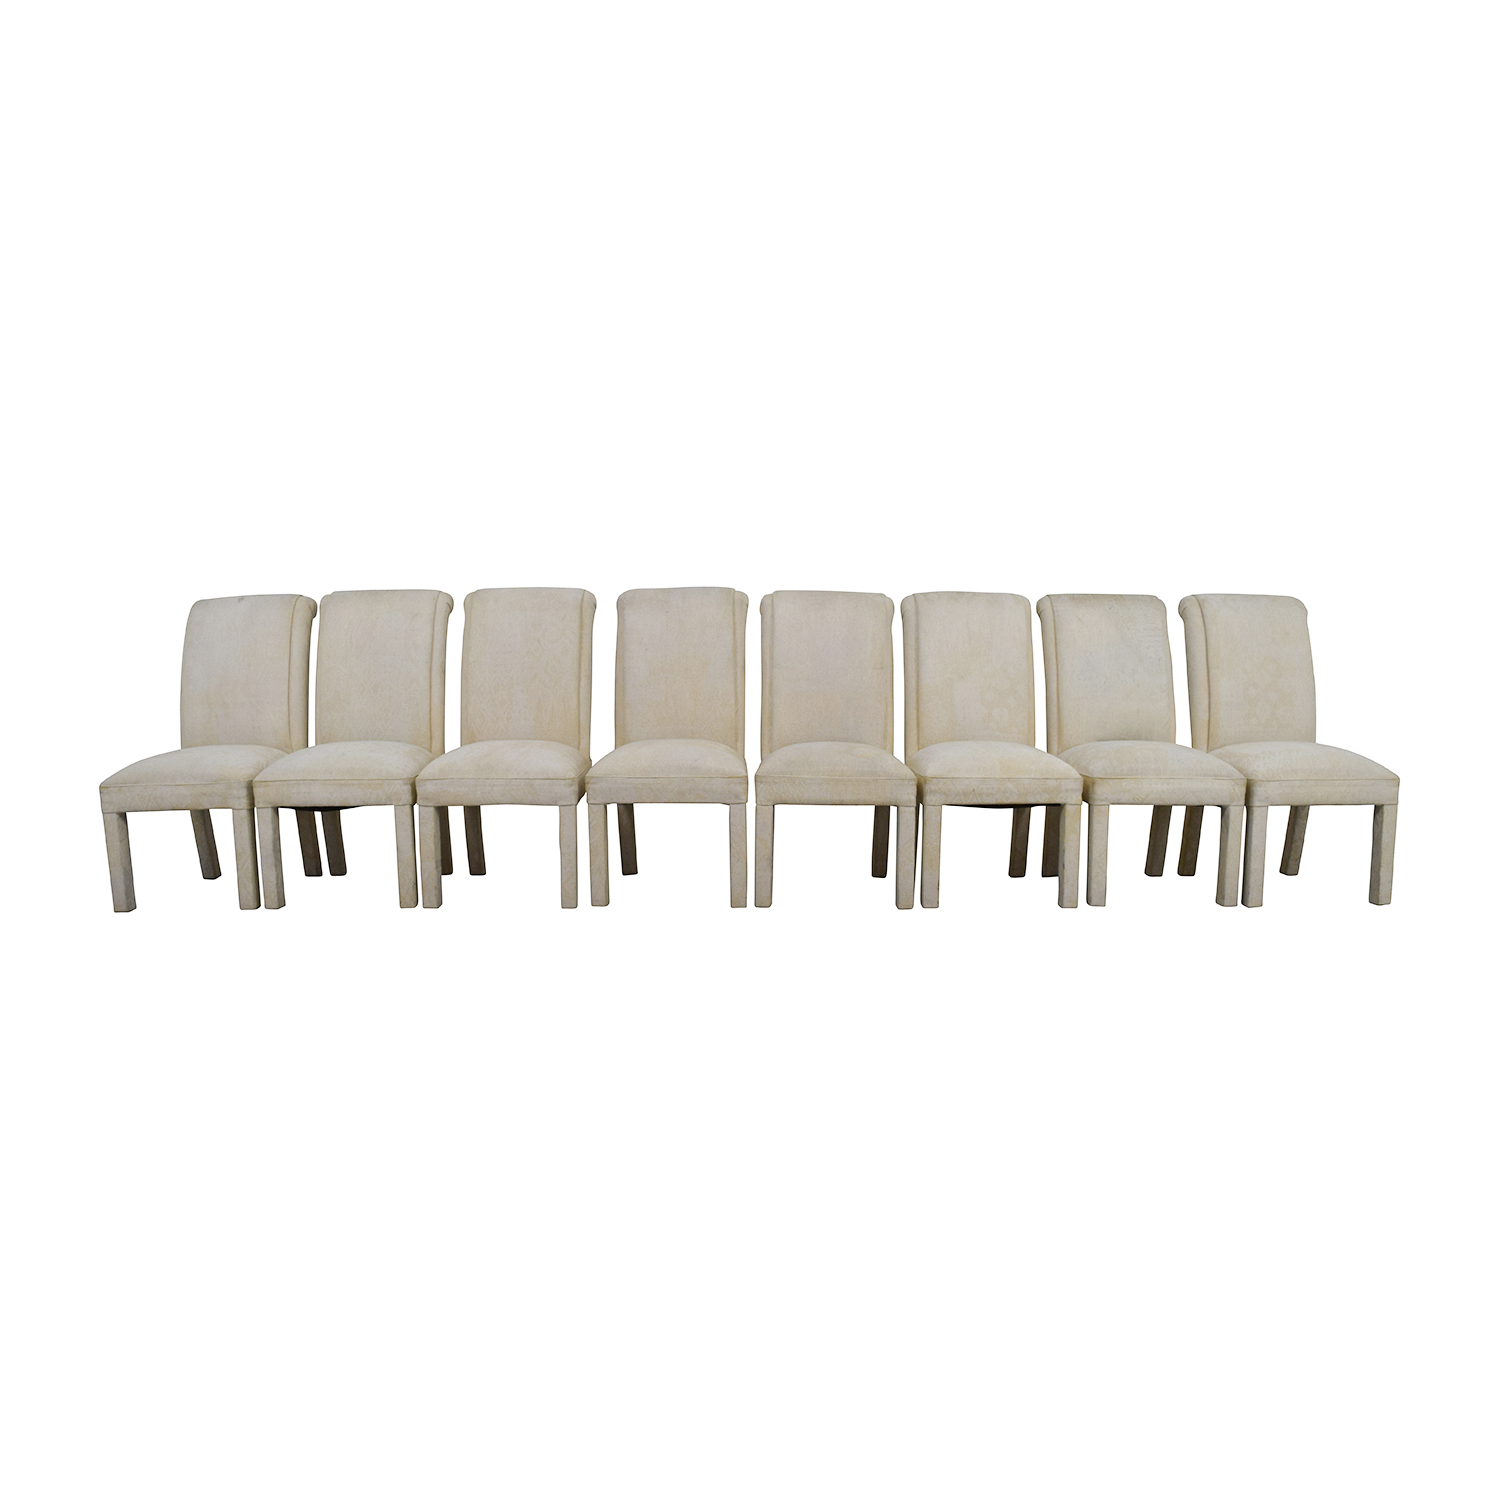 White Fabric Parsons Chairs / Dining Chairs